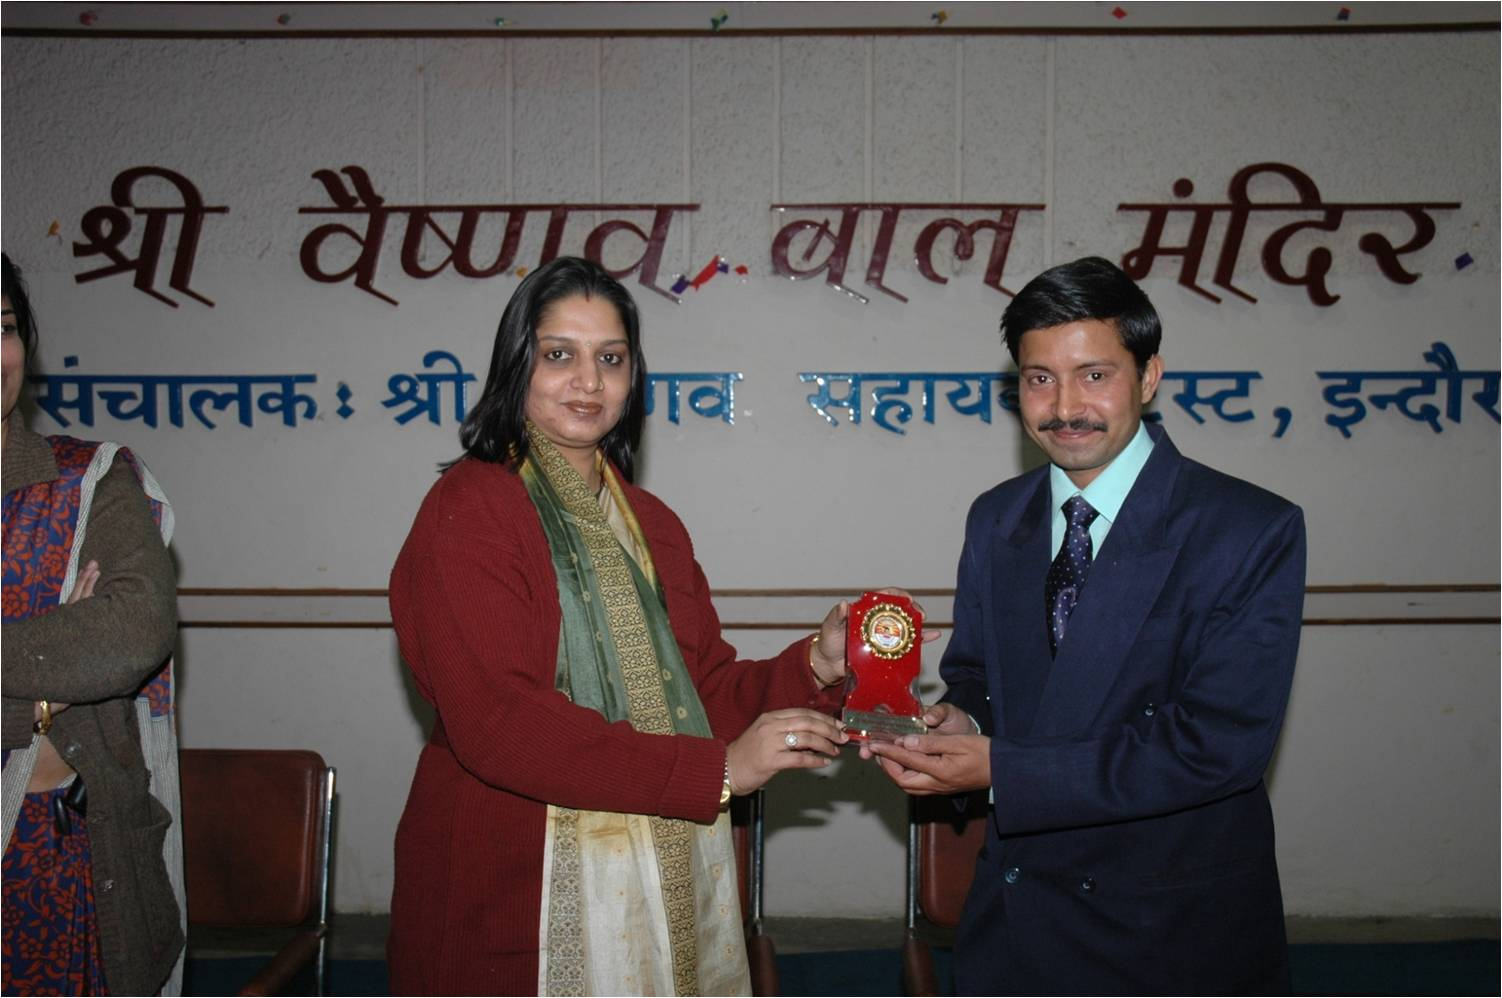 Sachin Bhatnagar Career Counsellor